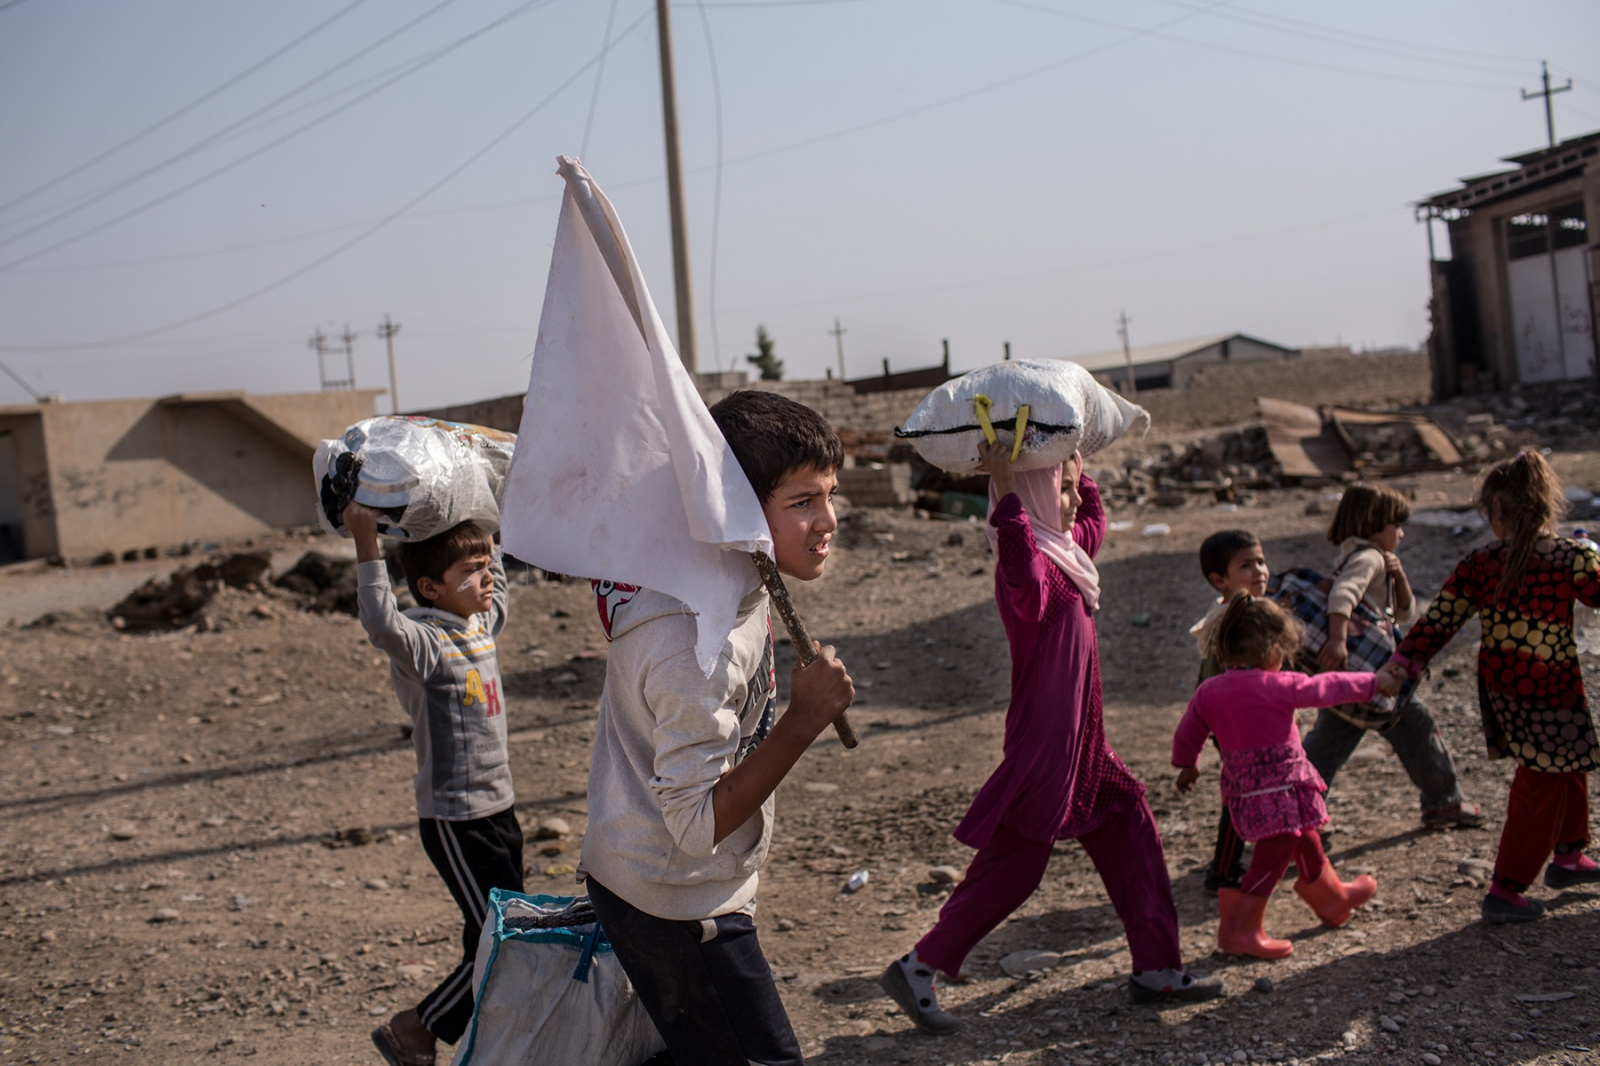 A boy carries a white flag indicating he is not a combatant while feeding from Mosul as Iraqi forces pushed deeper in the ISIS territory, near Gogjali, Iraq, November 2016. Over 100,000 civilians have fled from Mosul since the start of the offensive in October 2016 to retake the Iraqi city back from the hands of ISIS, which has controlled it for over two years.